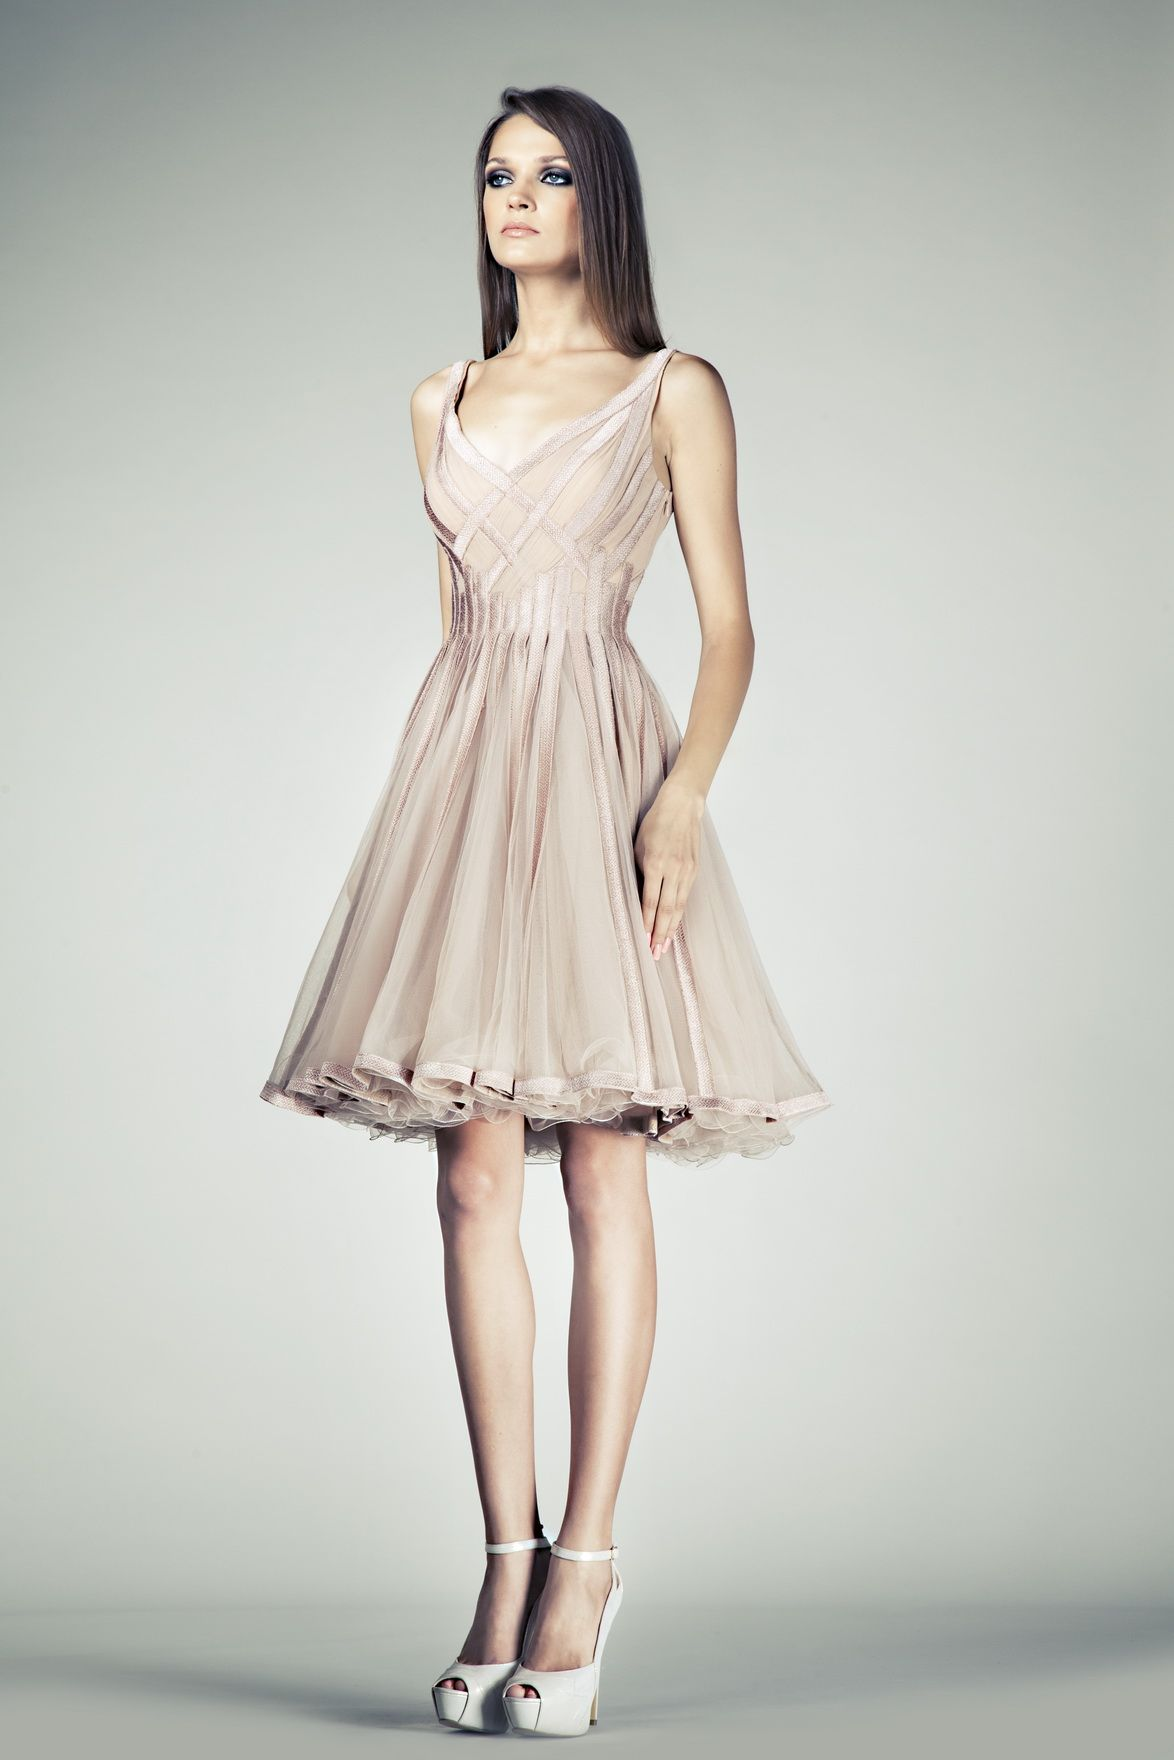 Tony Ward RTW SS14 I Style 12 I Cocktail dress made of Blush Tulle, embellished with interlaced lines of embroidered Silk band appliques